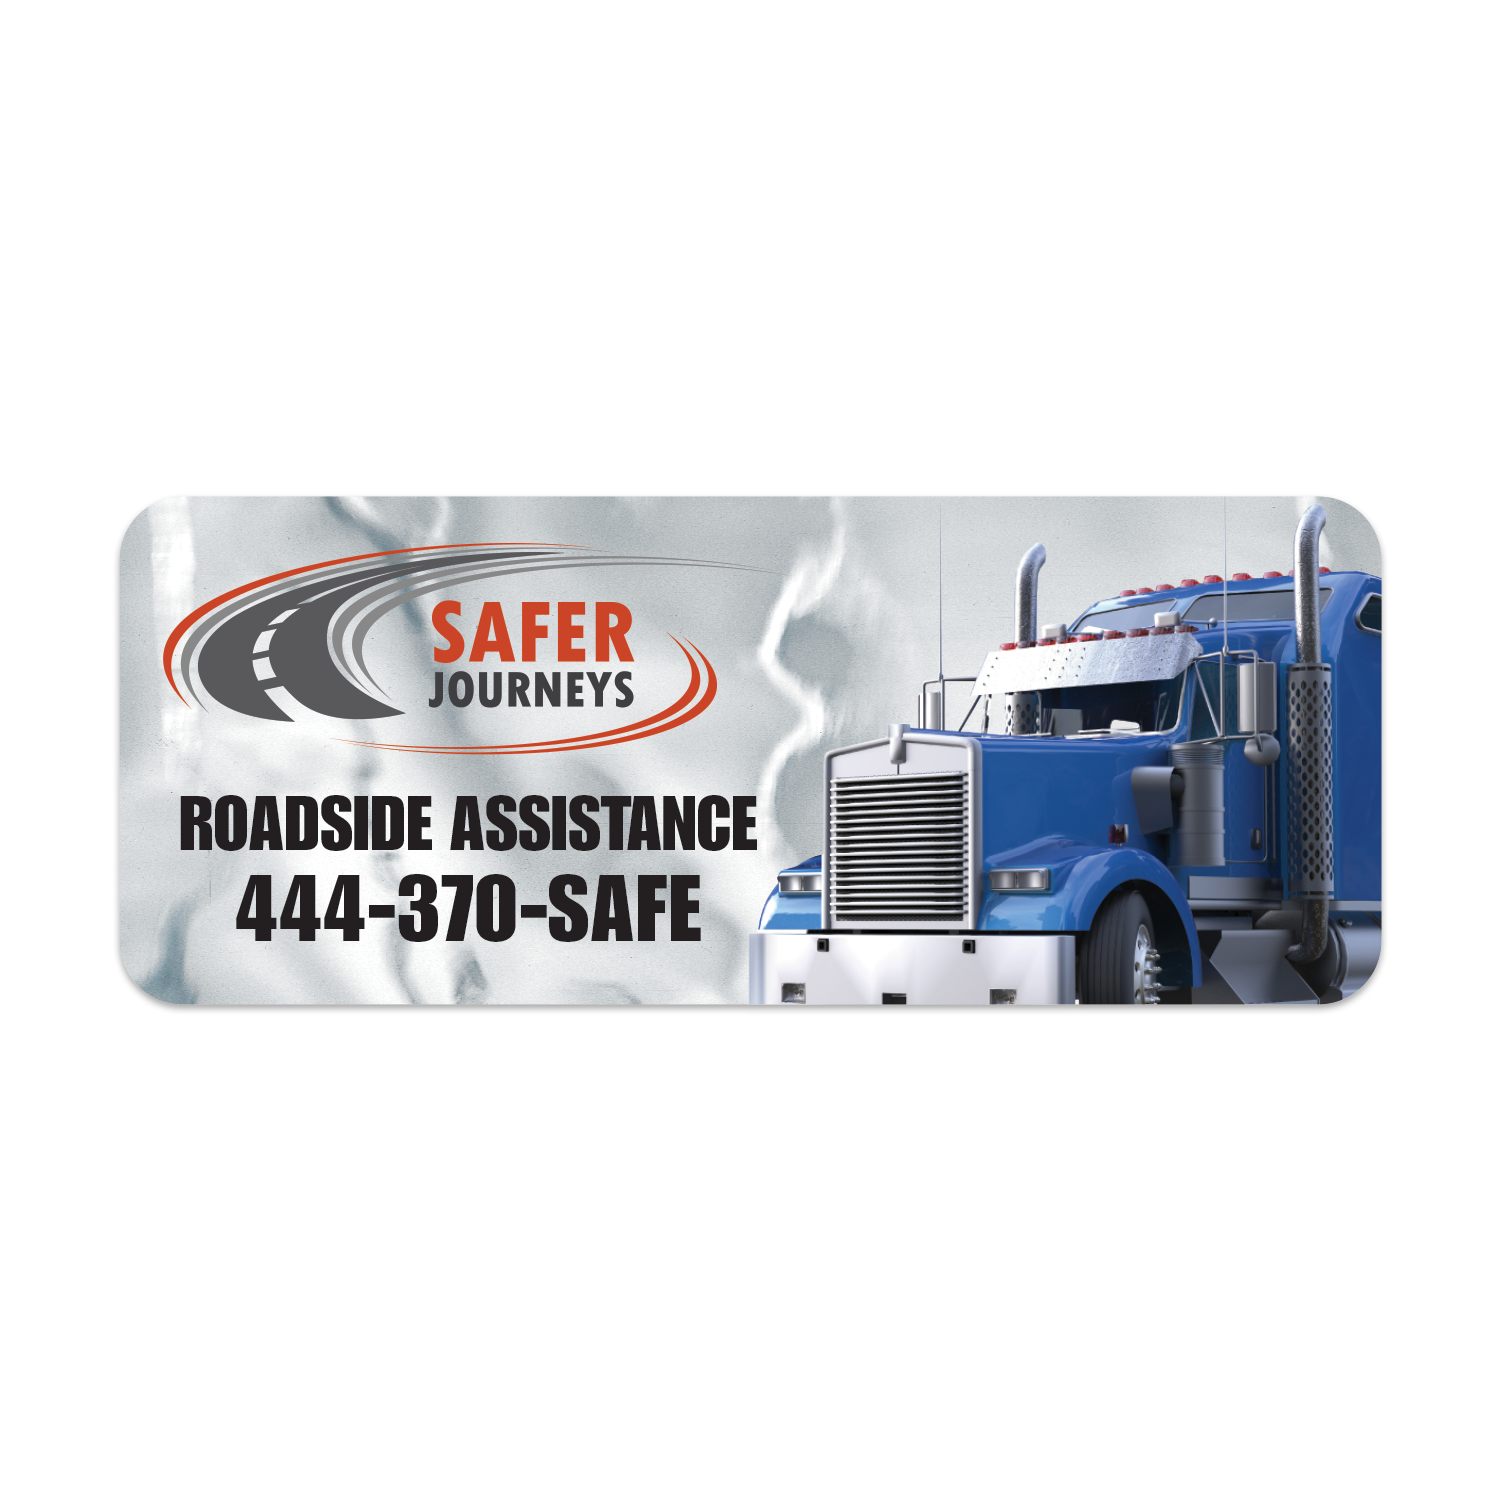 https://www.sswprinting.com/images/products_gallery_images/184322_Safer-Journeys-Roadside-Assistance_hi-res.png